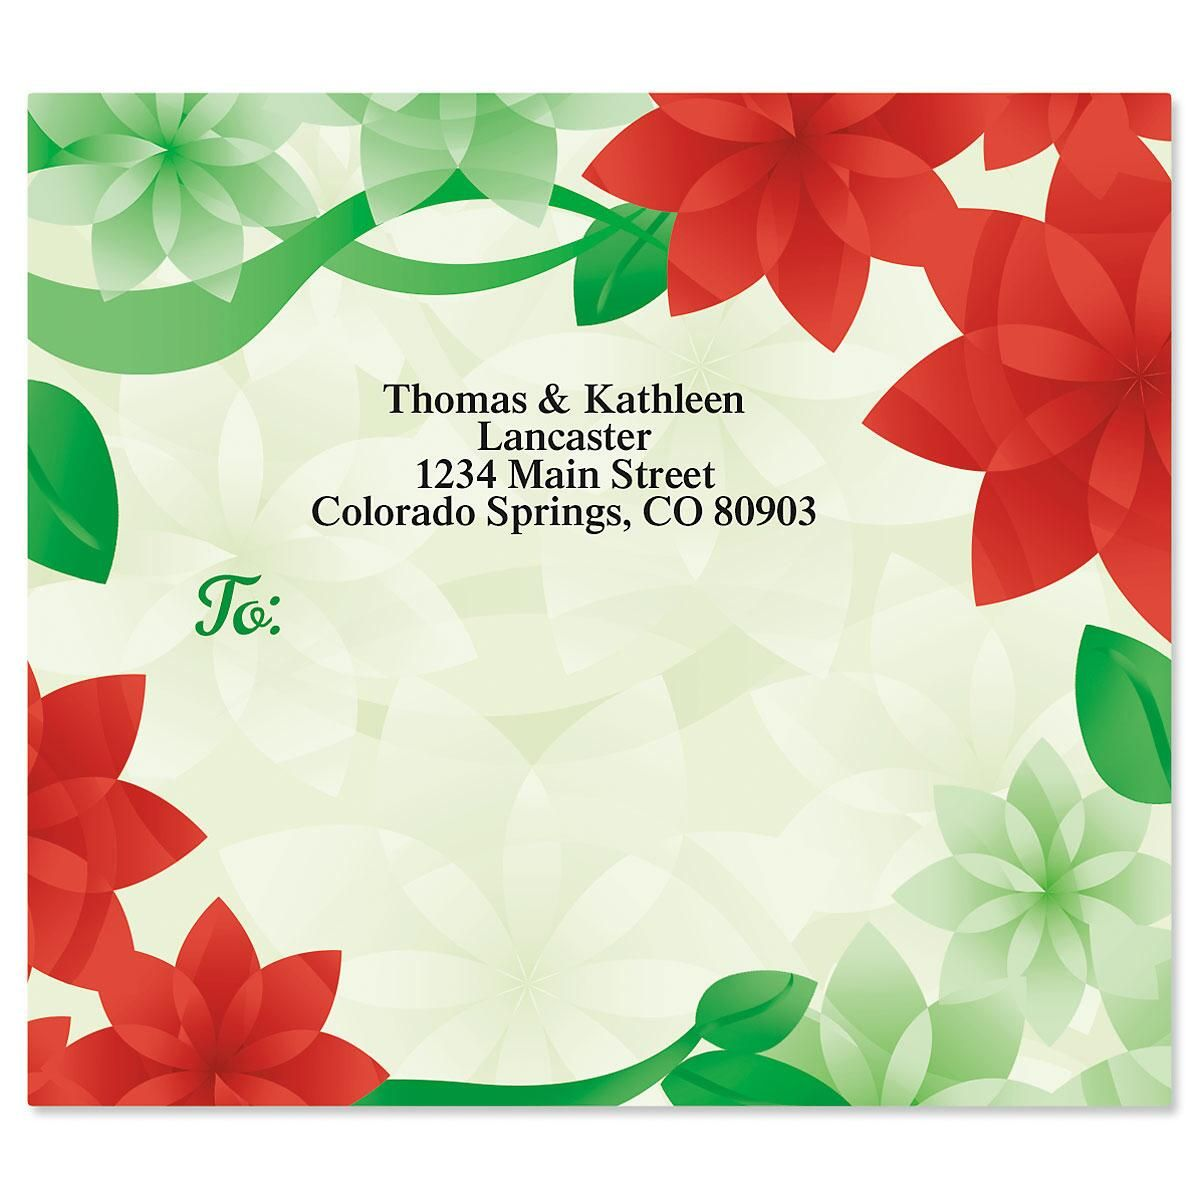 Poinsettia Petals Package Labels